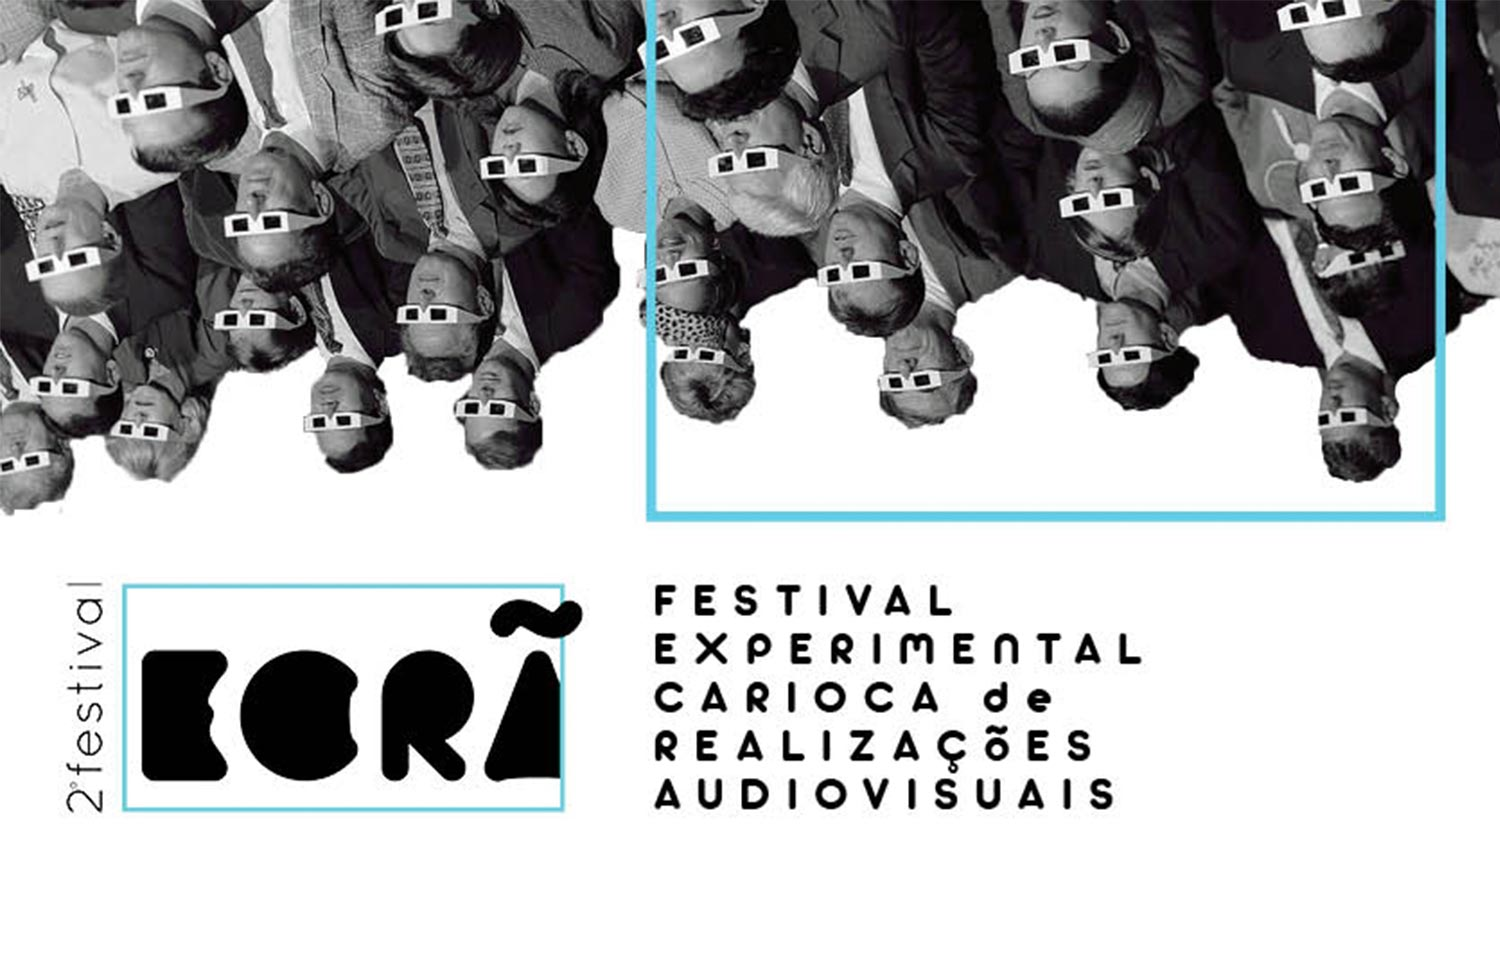 Festival Ecrã – Sleep Has Her House; O Raro Evento